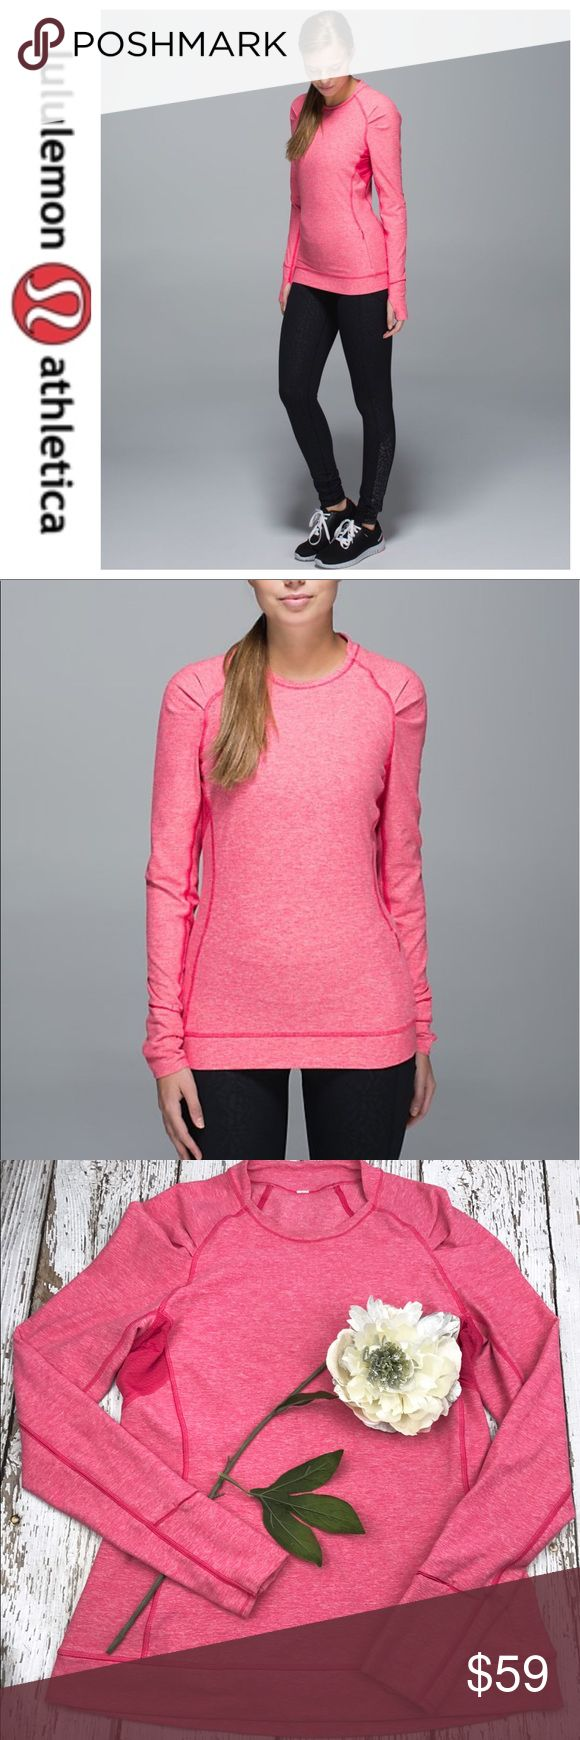 SALELululemon Pink Think Fast Long Sleeved Top Fabulous Lululemon Think Fast Heathered Boom Juice Long Sleeved Top Like New Super Soft lululemon athletica Tops